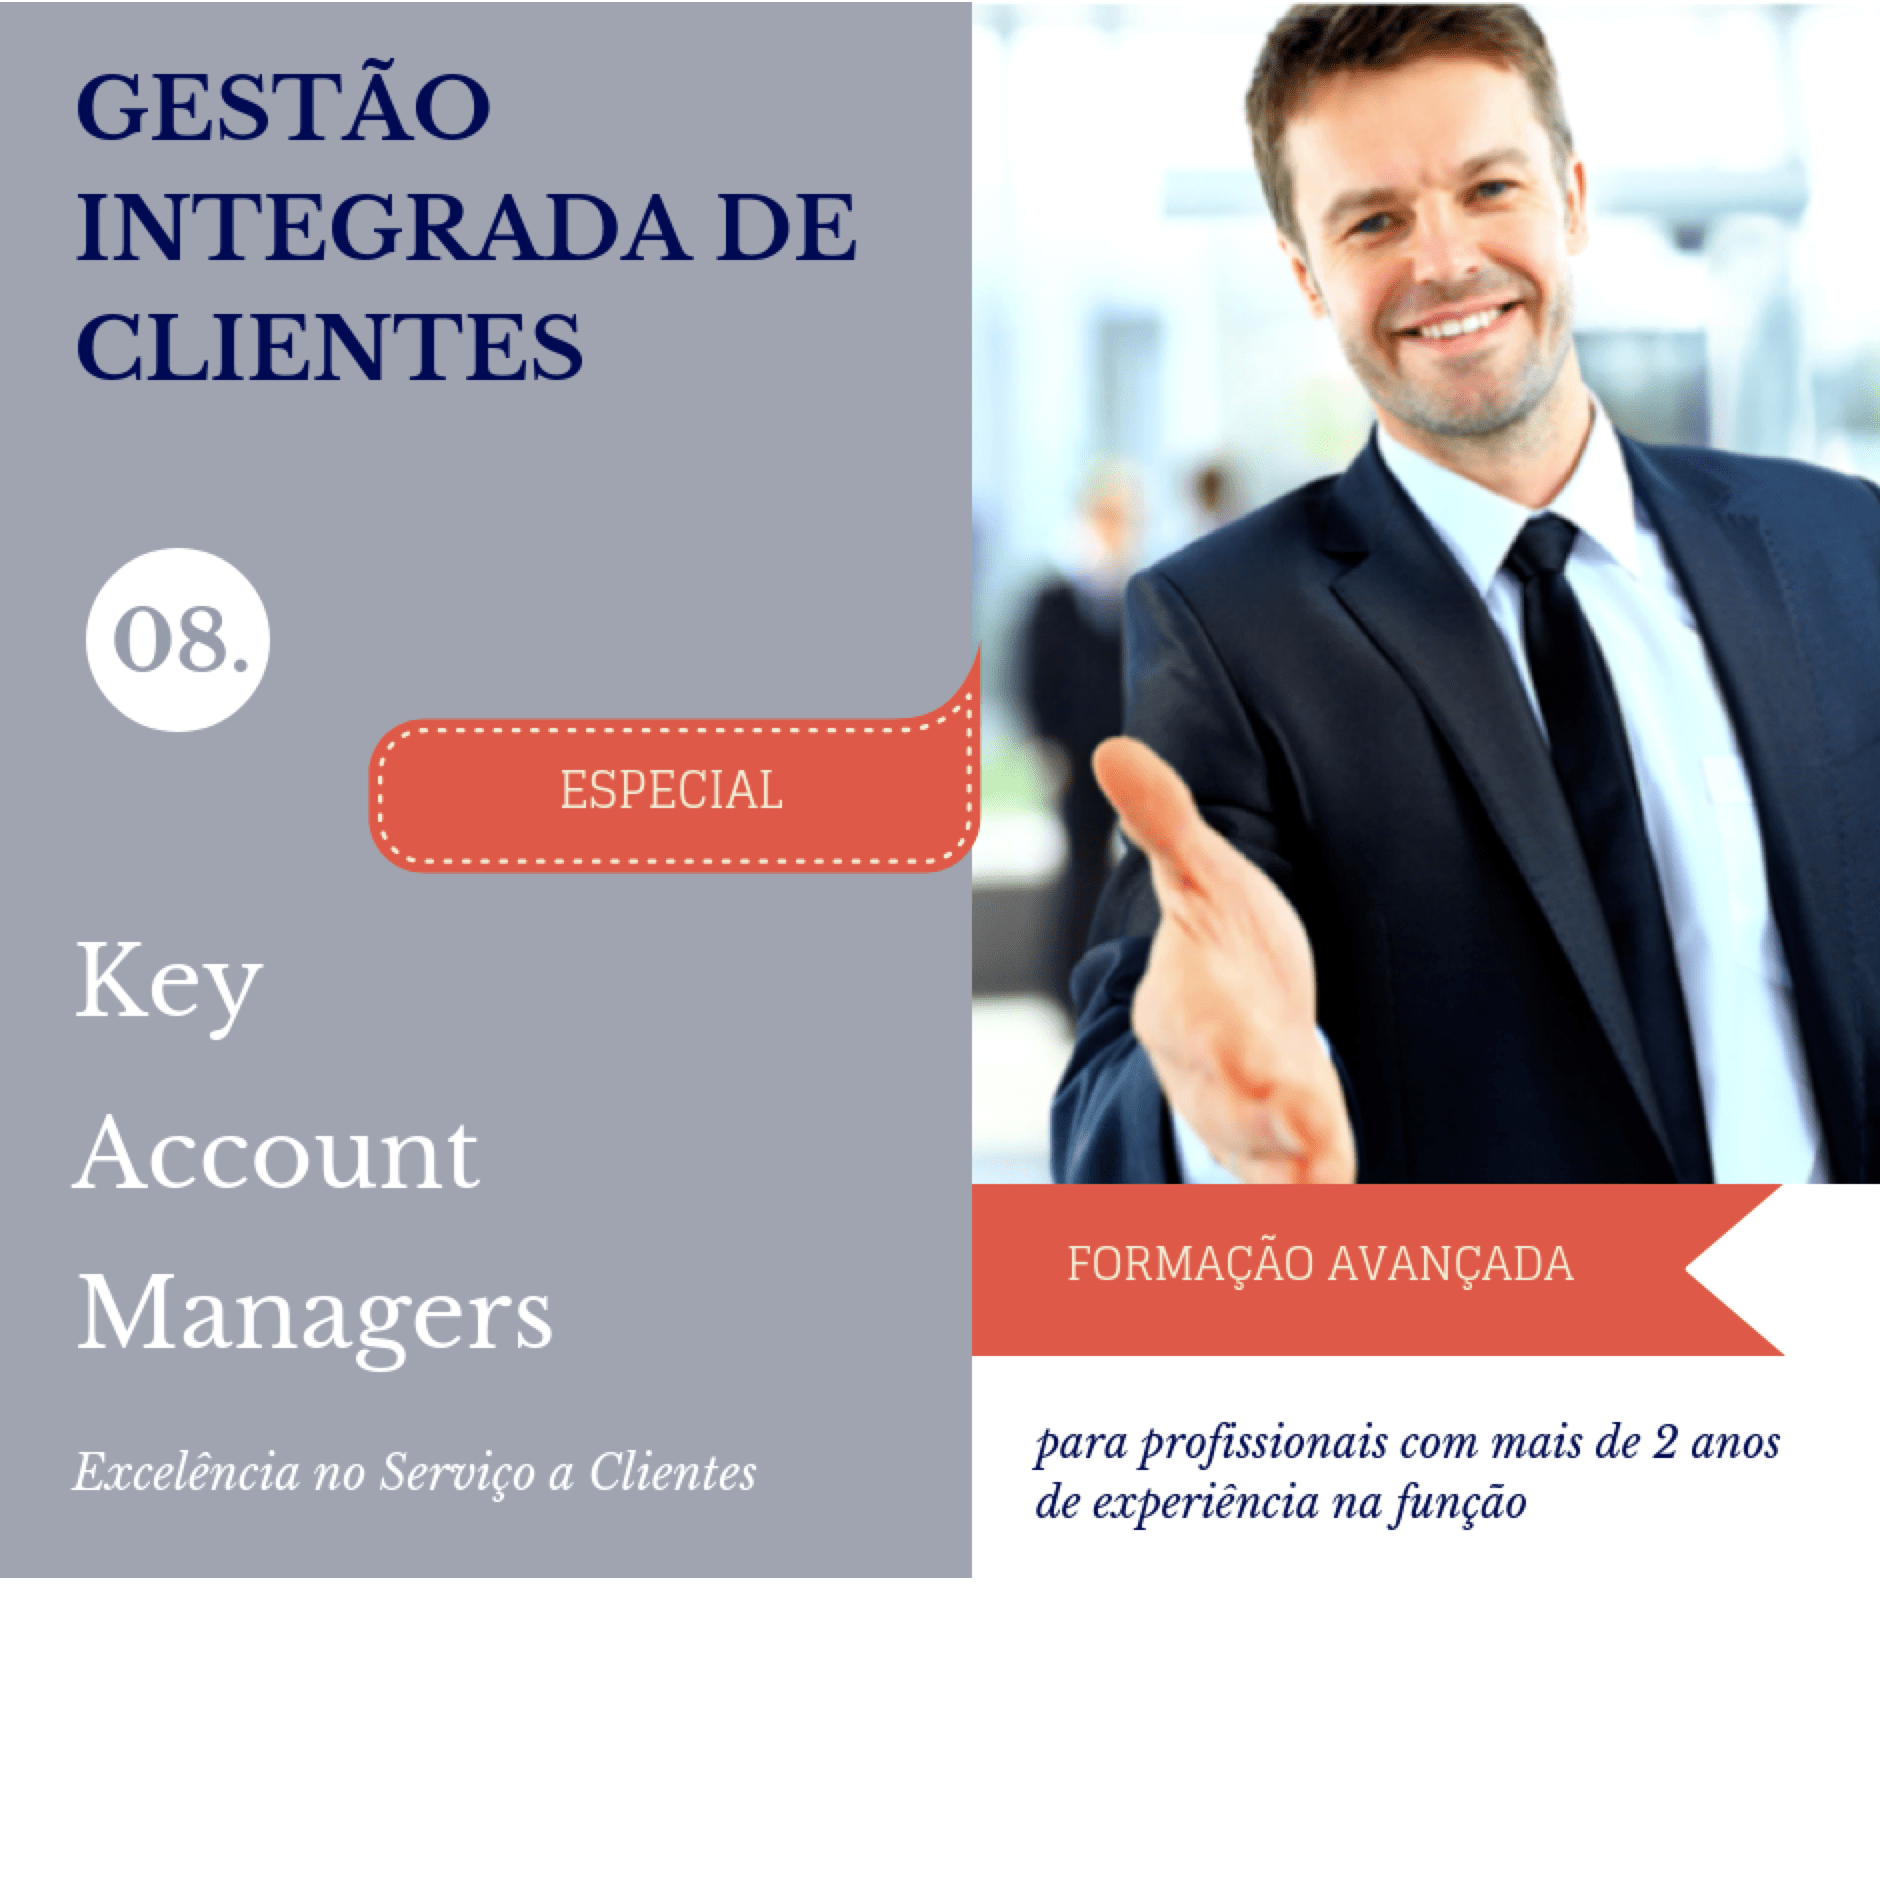 Key Account Managers